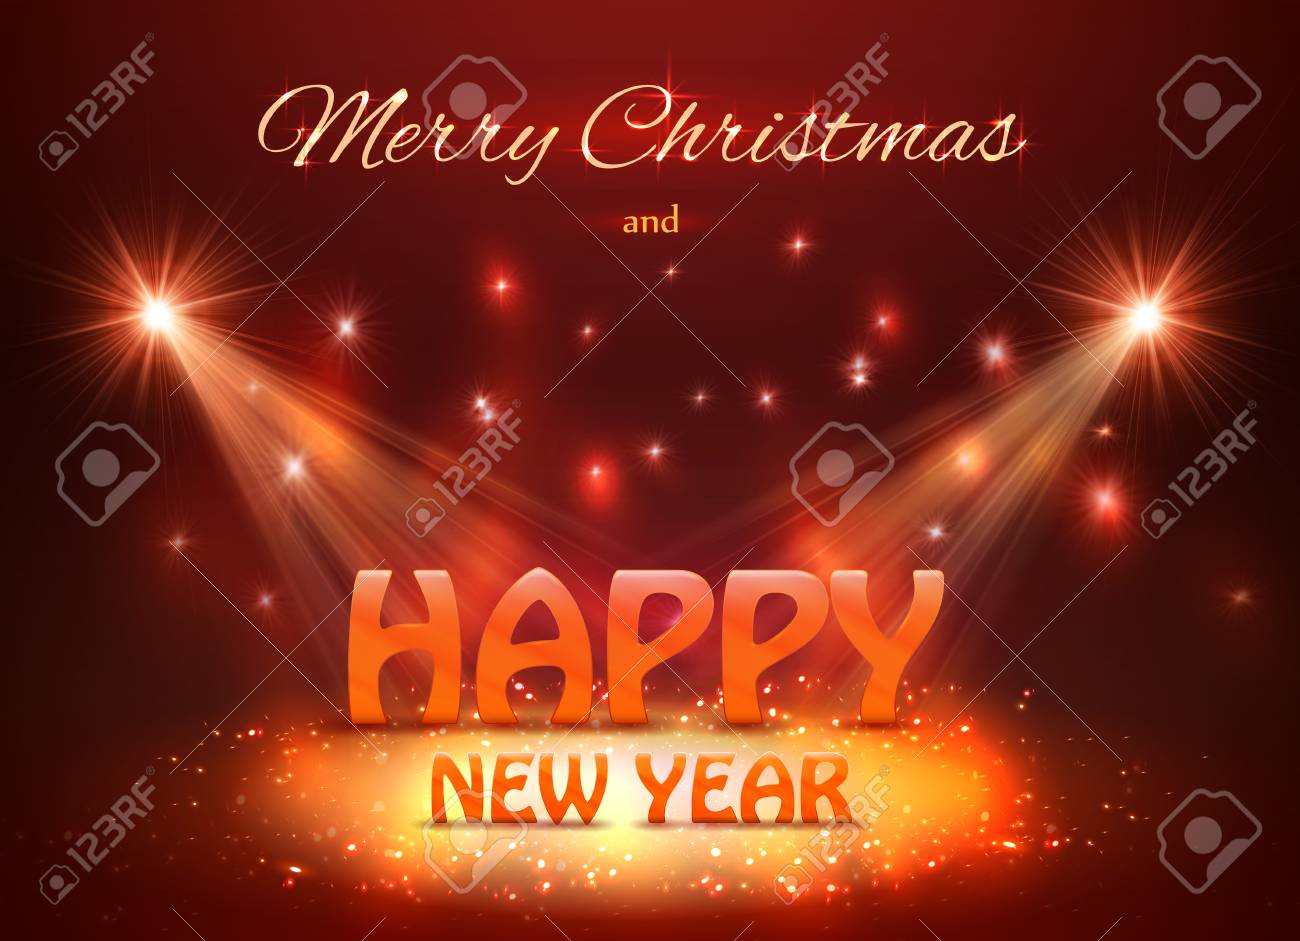 2018 Happy New Year Greeting Background With Spotlights Royalty Free